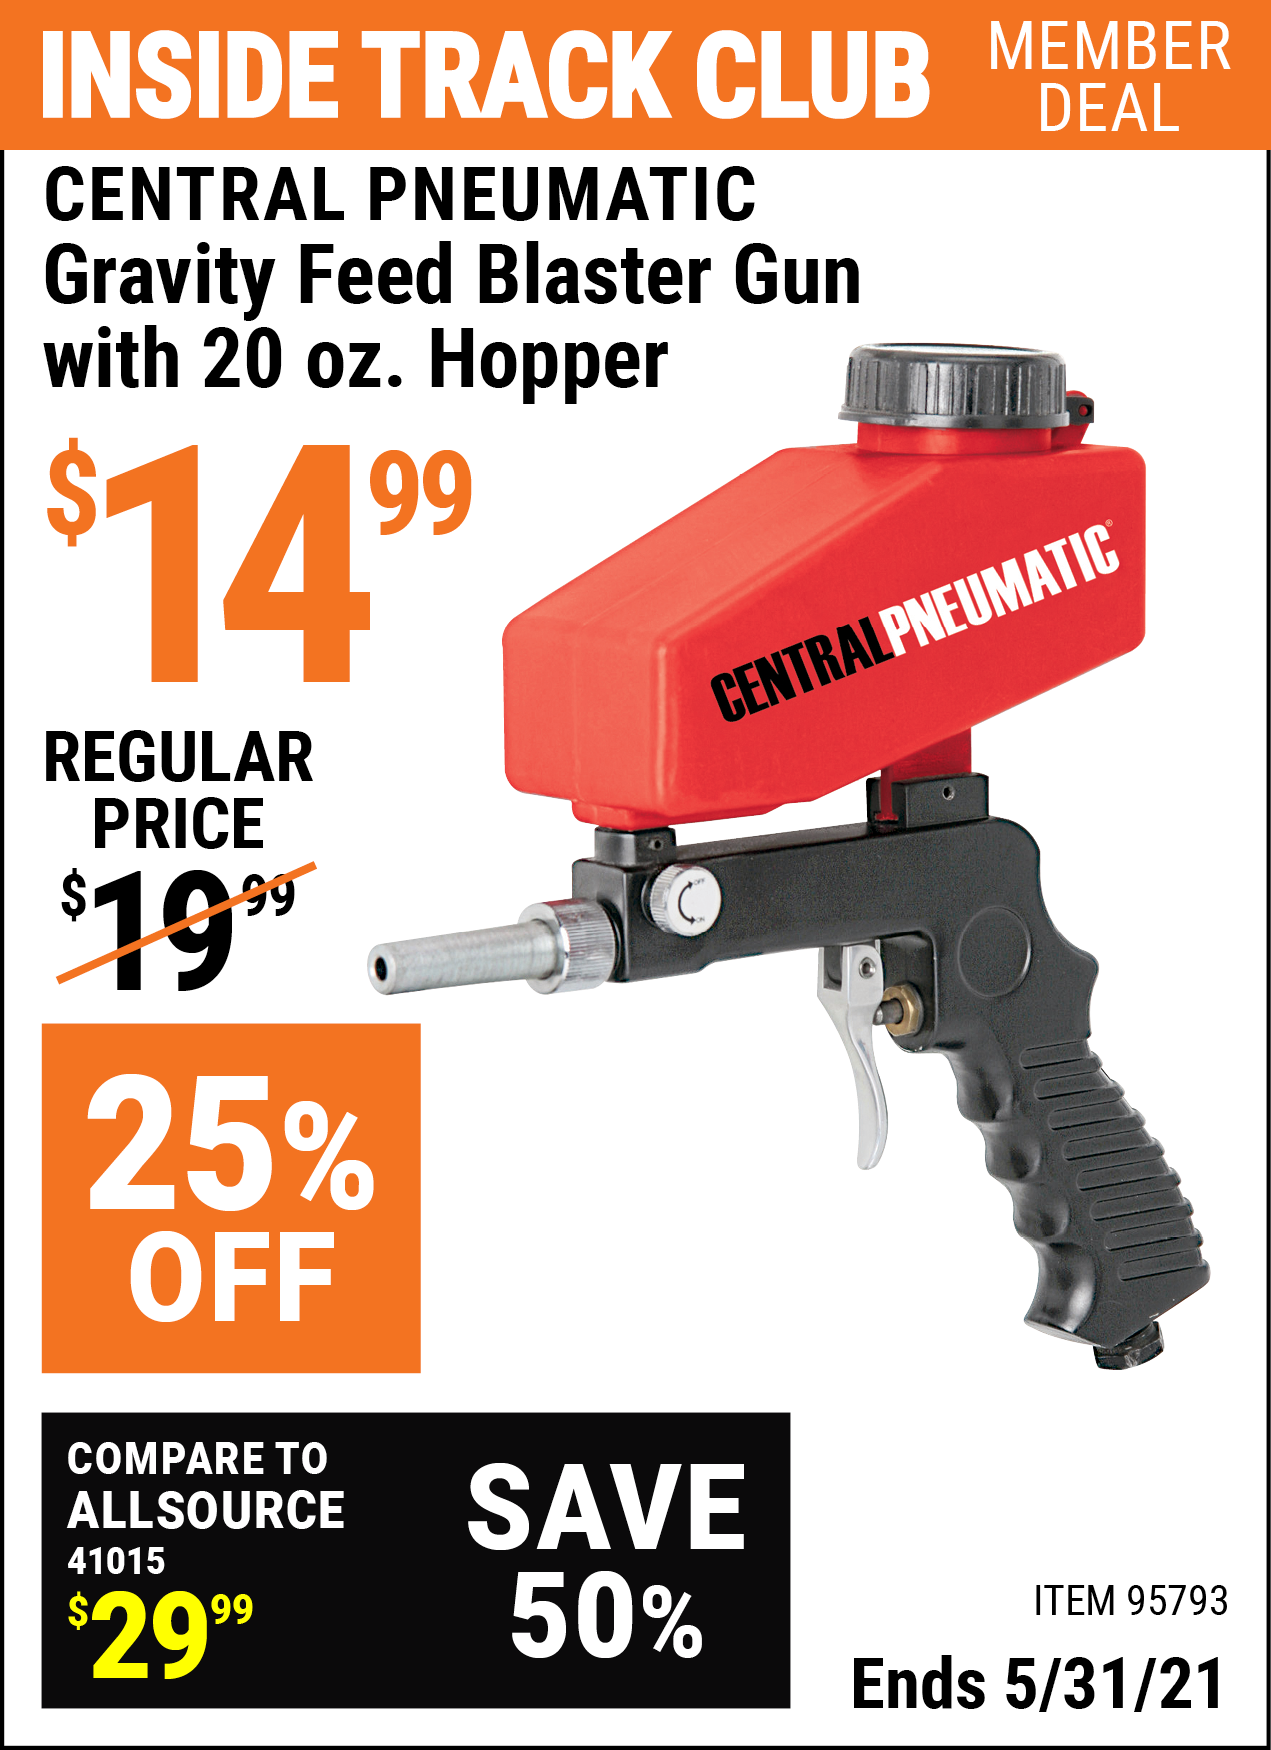 Inside Track Club members can buy the CENTRAL PNEUMATIC Gravity Feed Blaster Gun with 20 oz. Hopper (Item 95793) for $14.99, valid through 5/31/2021.